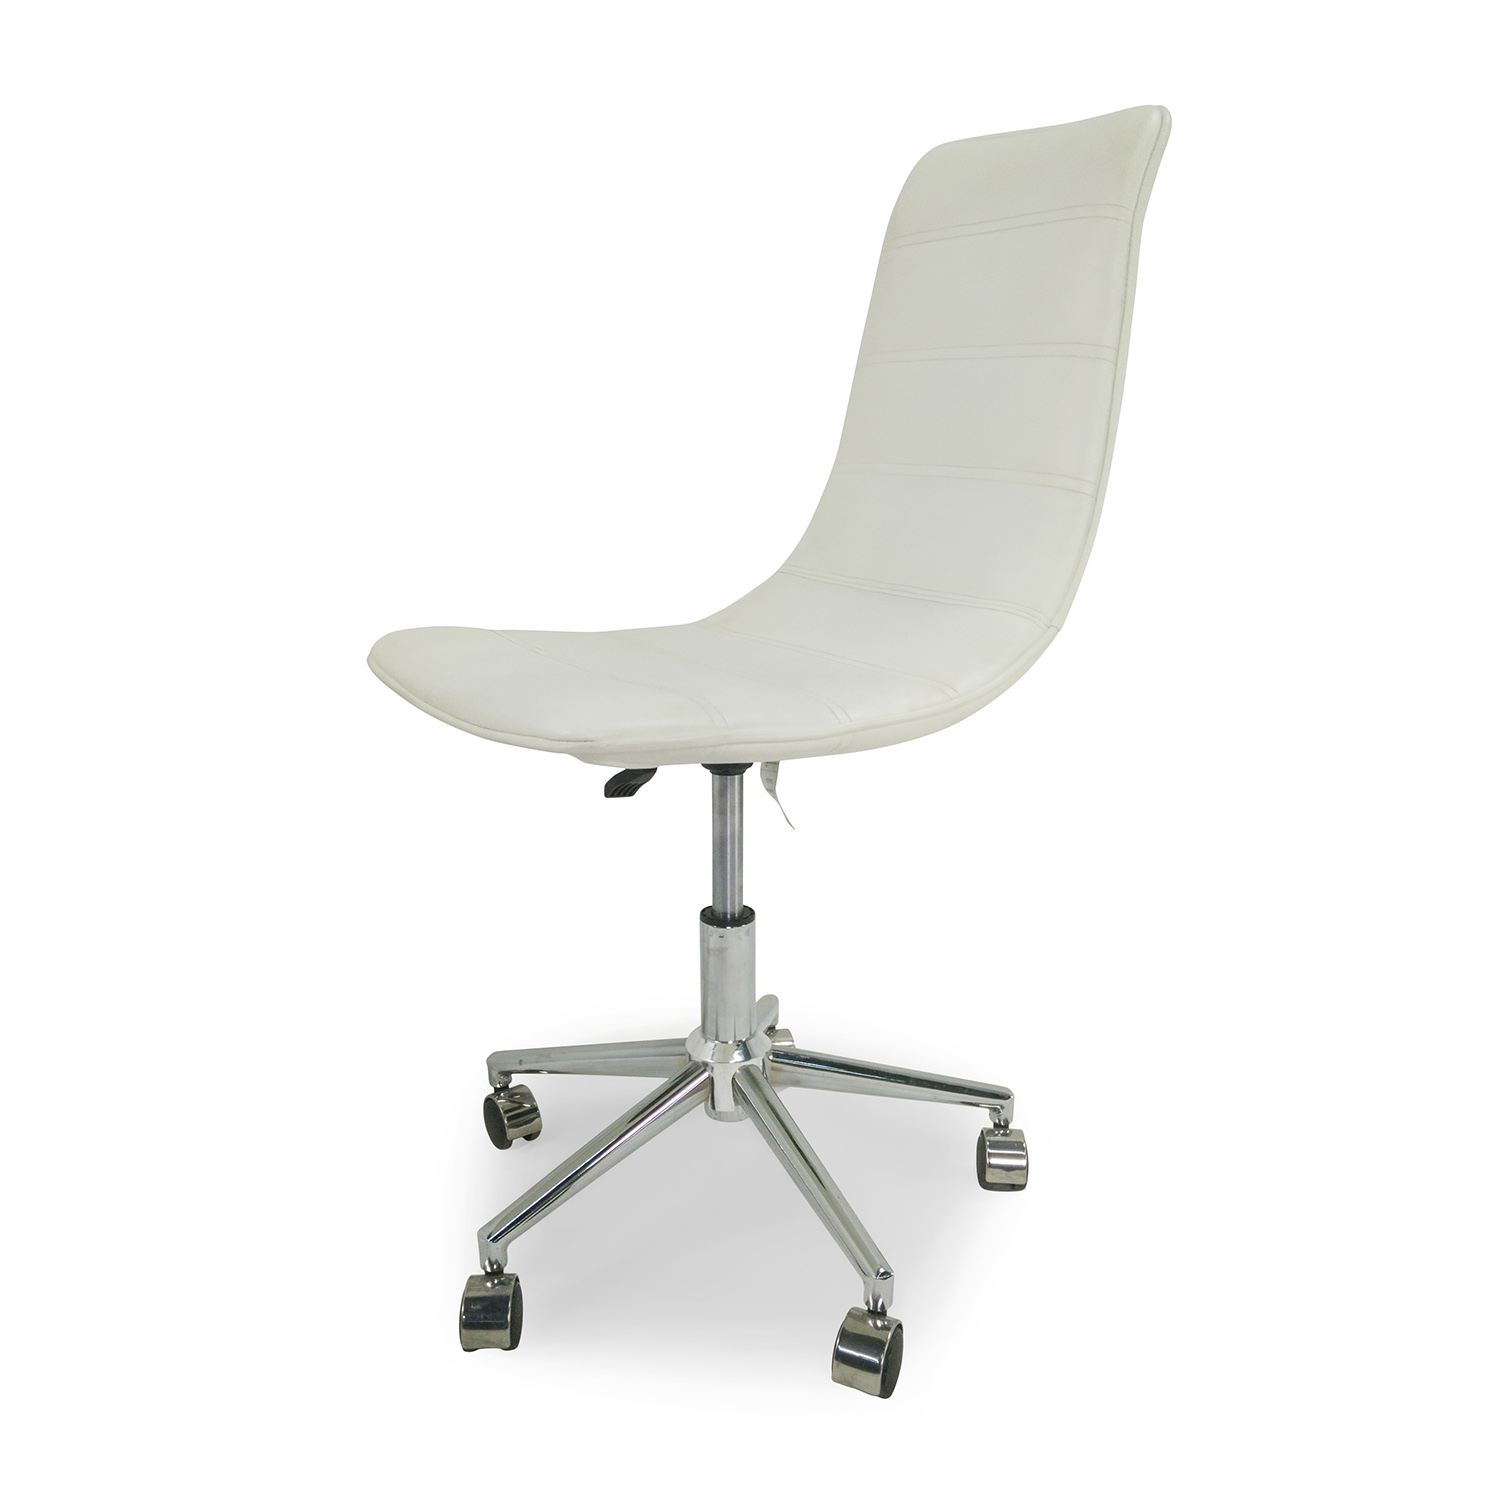 91 off zuo modern contemporary zuo modern swivel chair for Modern swivel chair